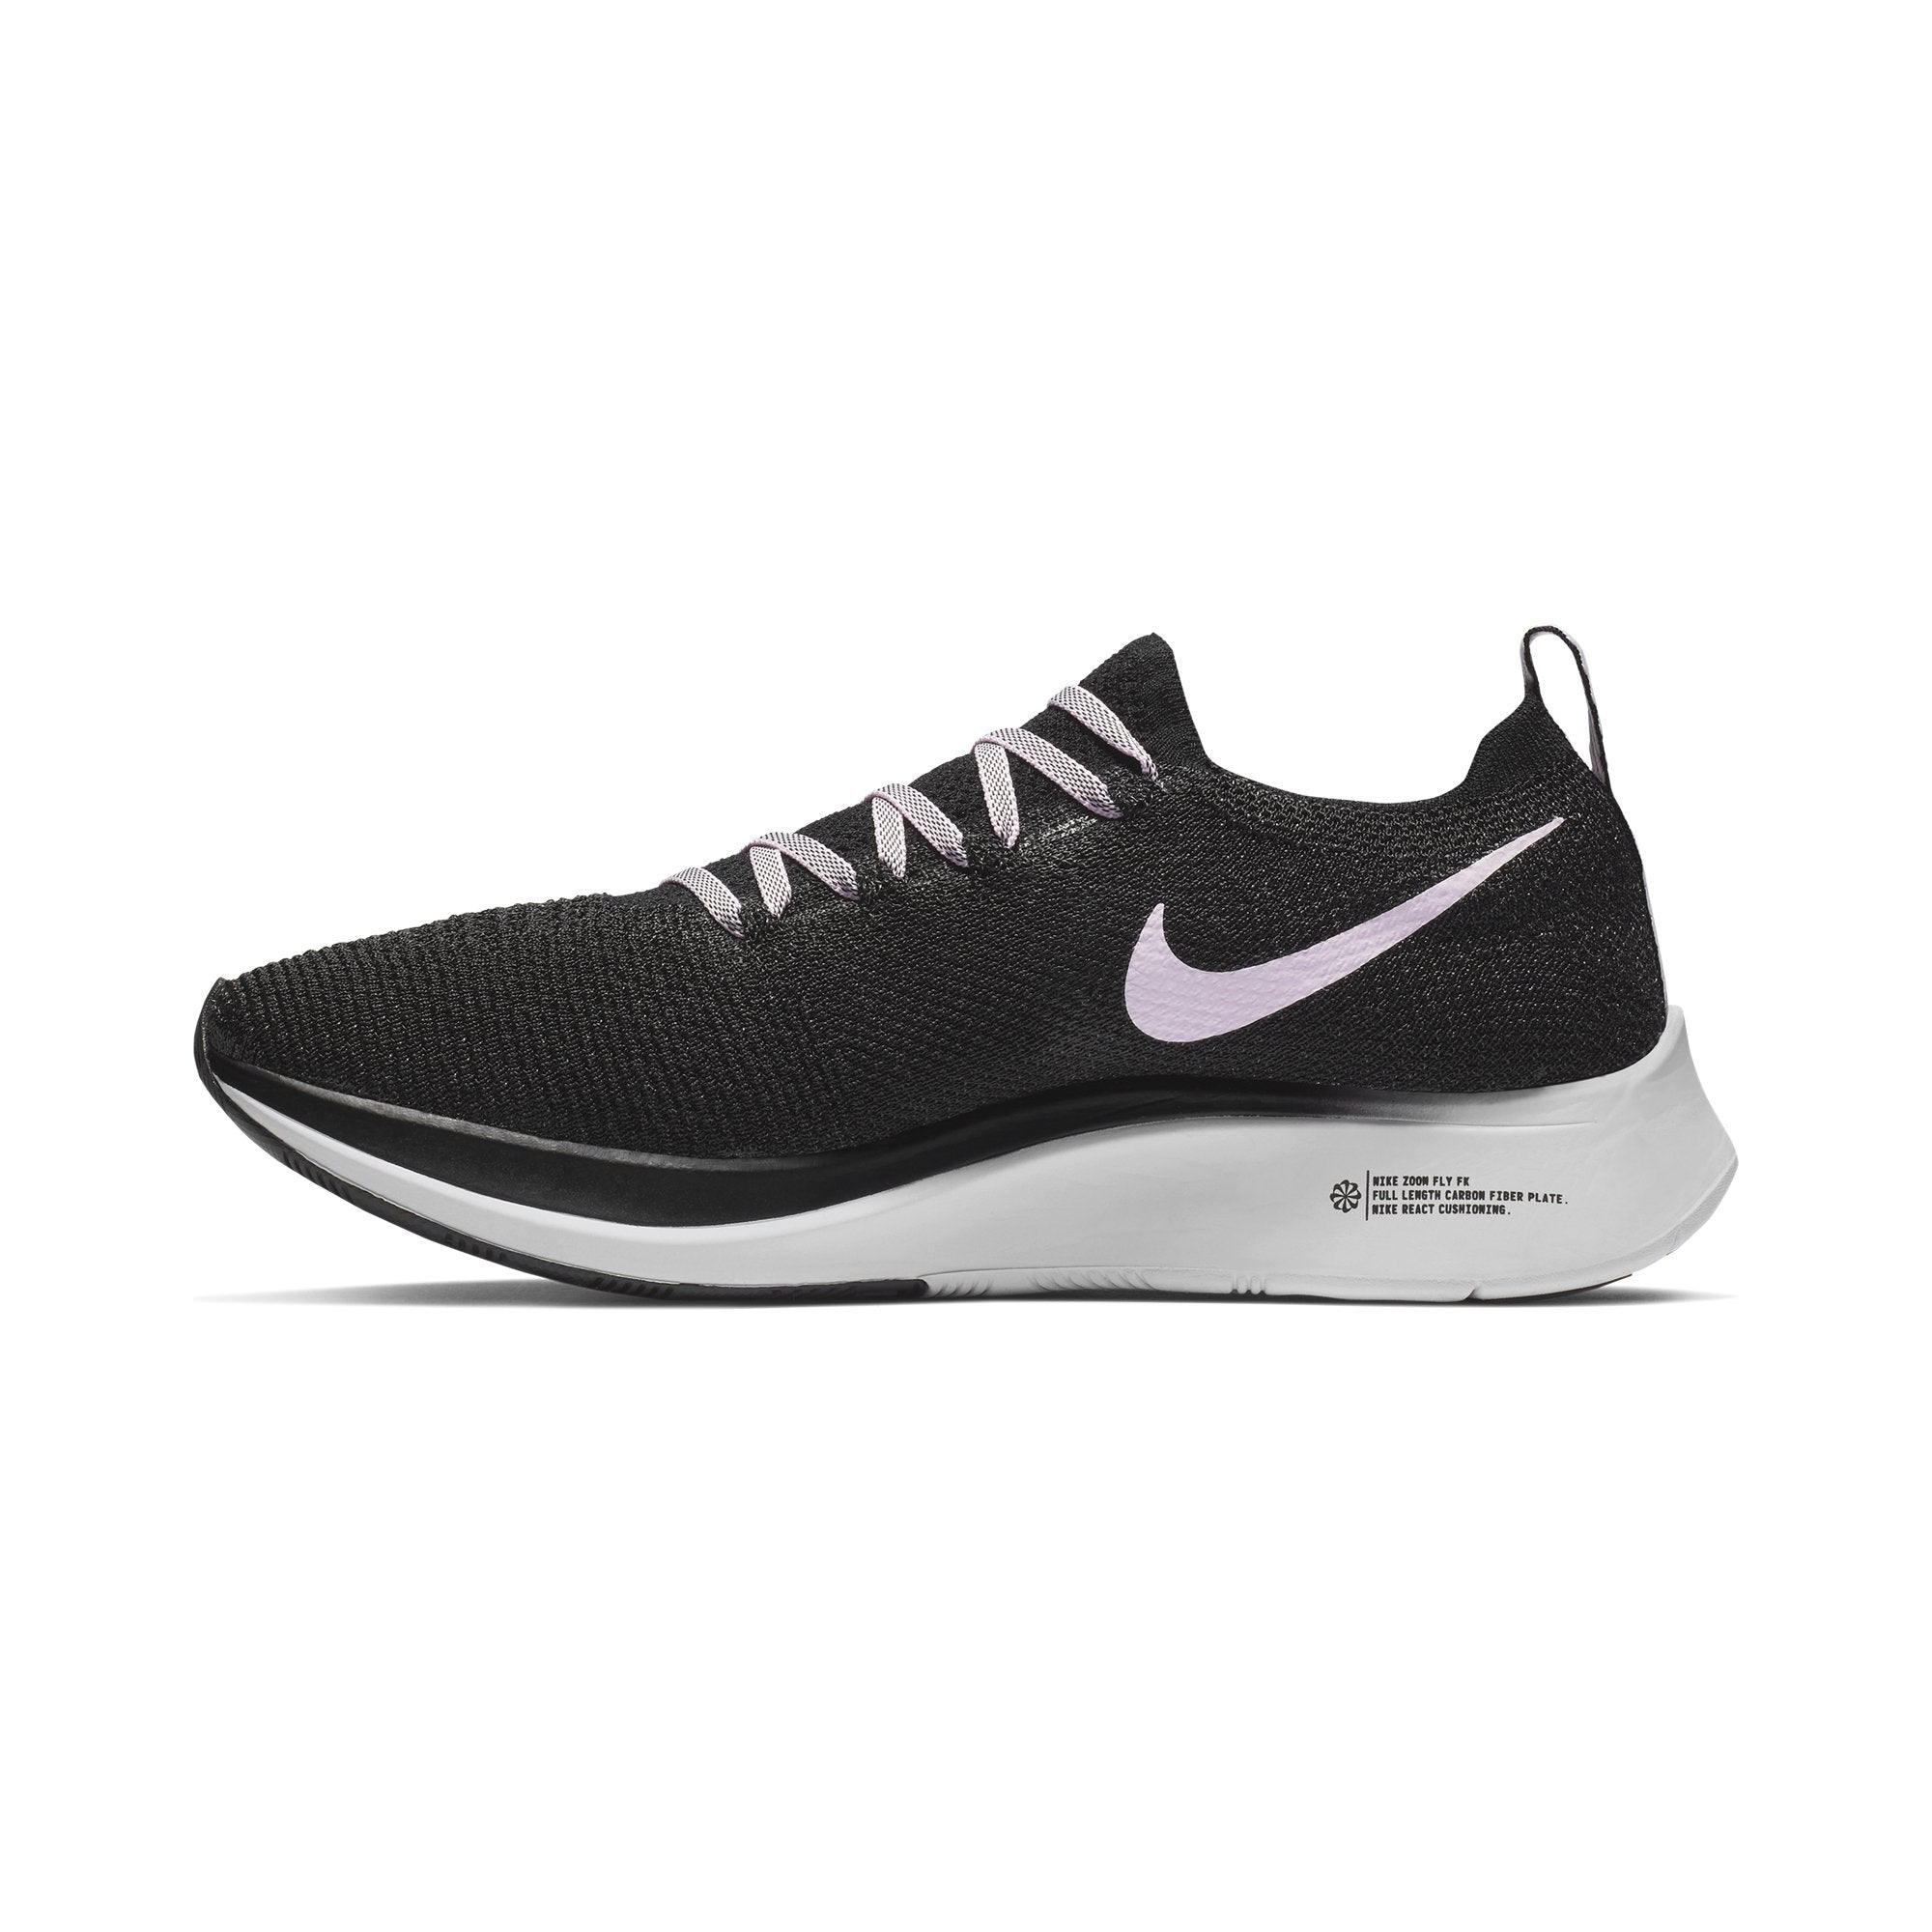 quality design b6d4e 24674 Women s Zoom Fly Flyknit Running Shoes, Black Pink Foam Vast Grey